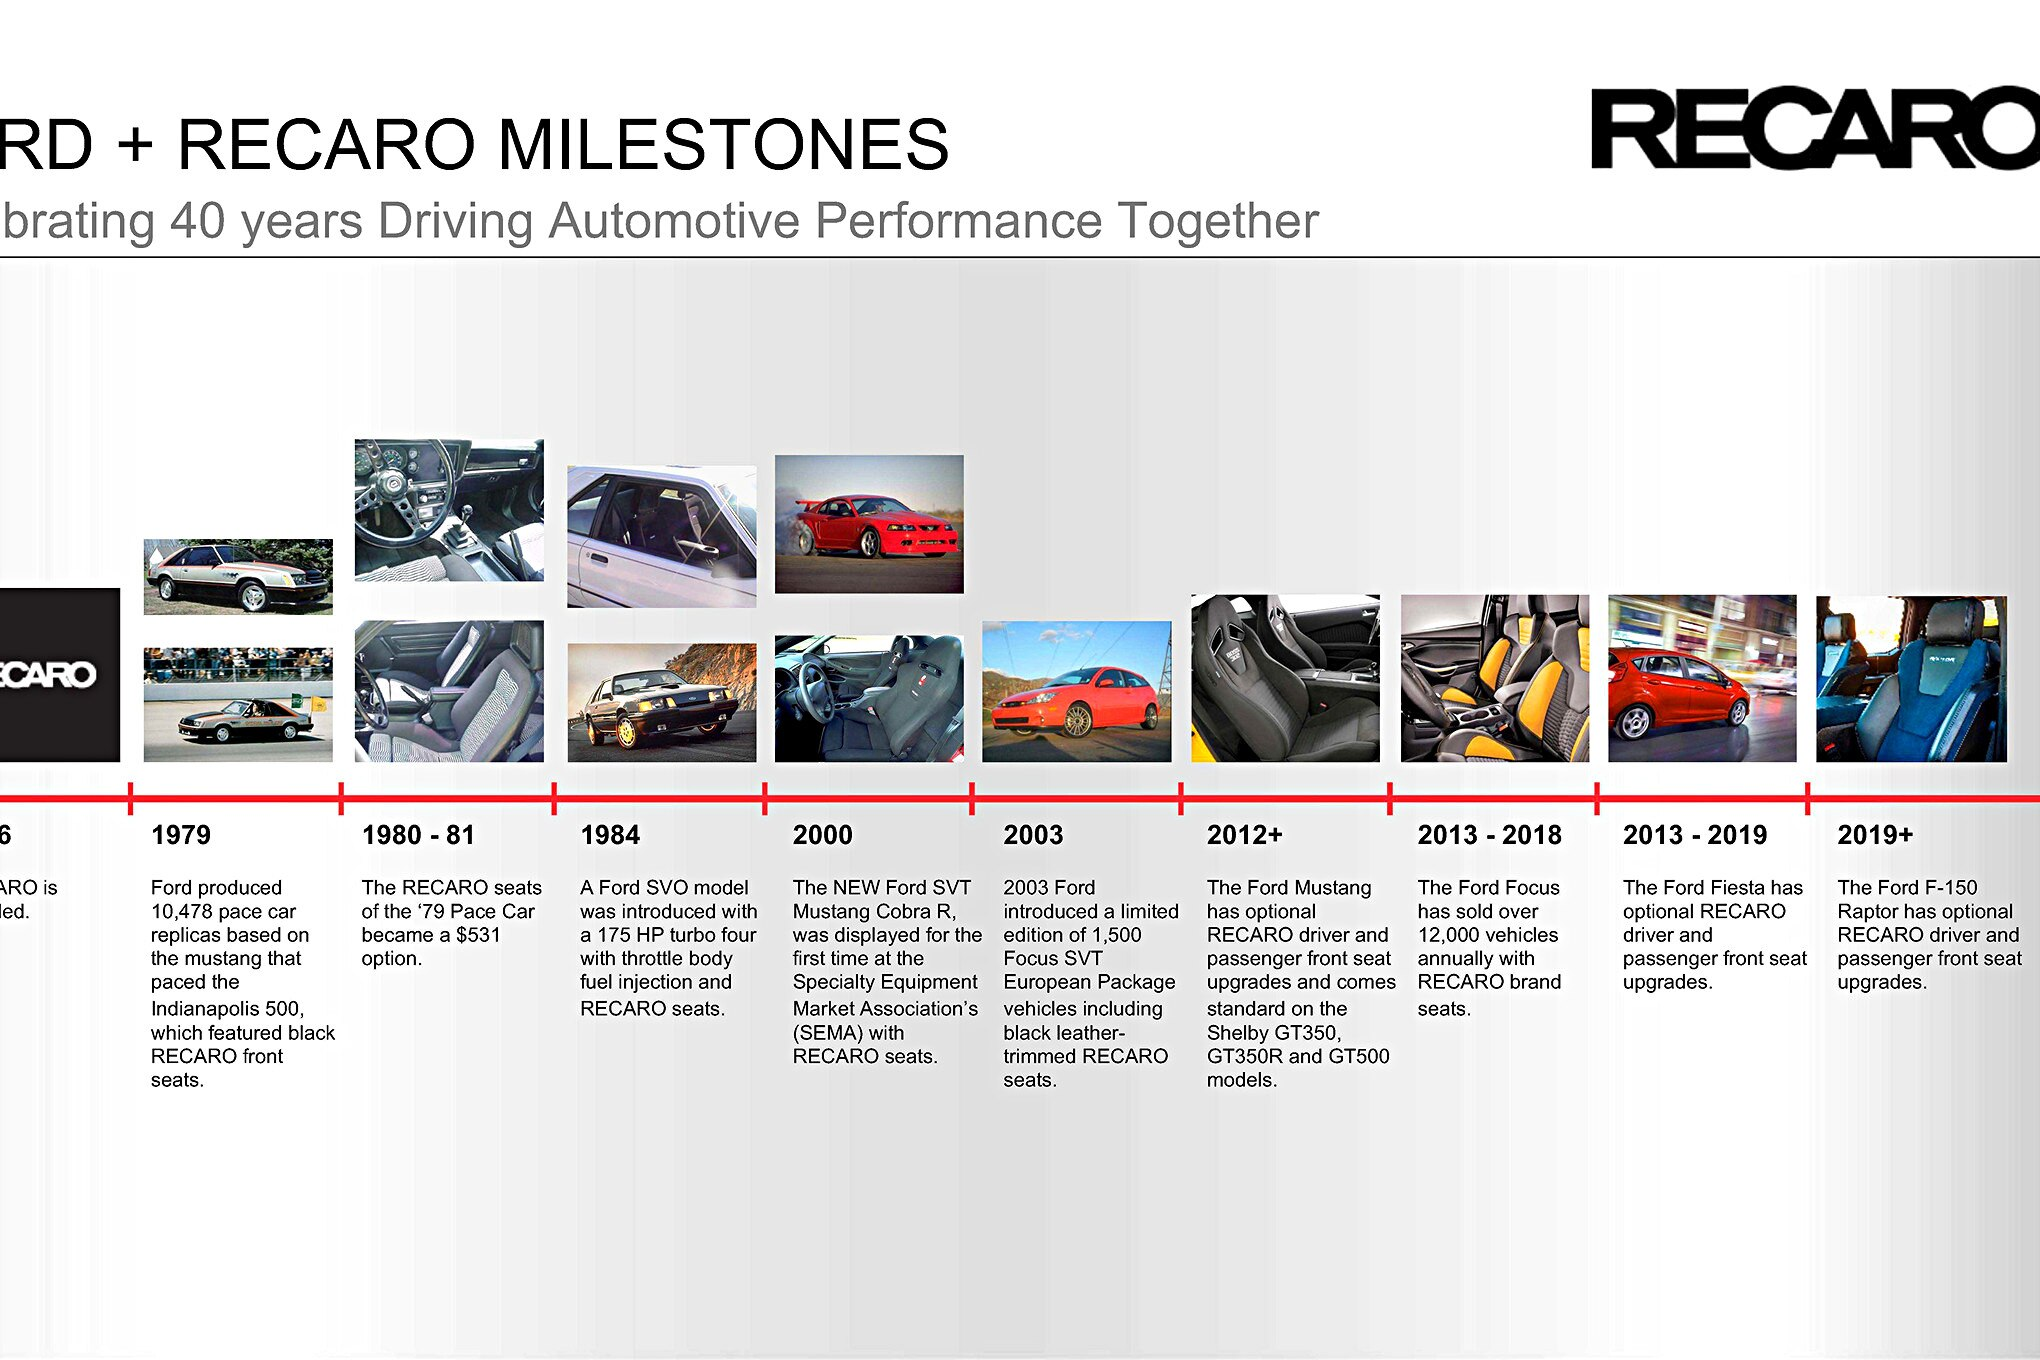 ford-recaro-milestones-40-years.jpg